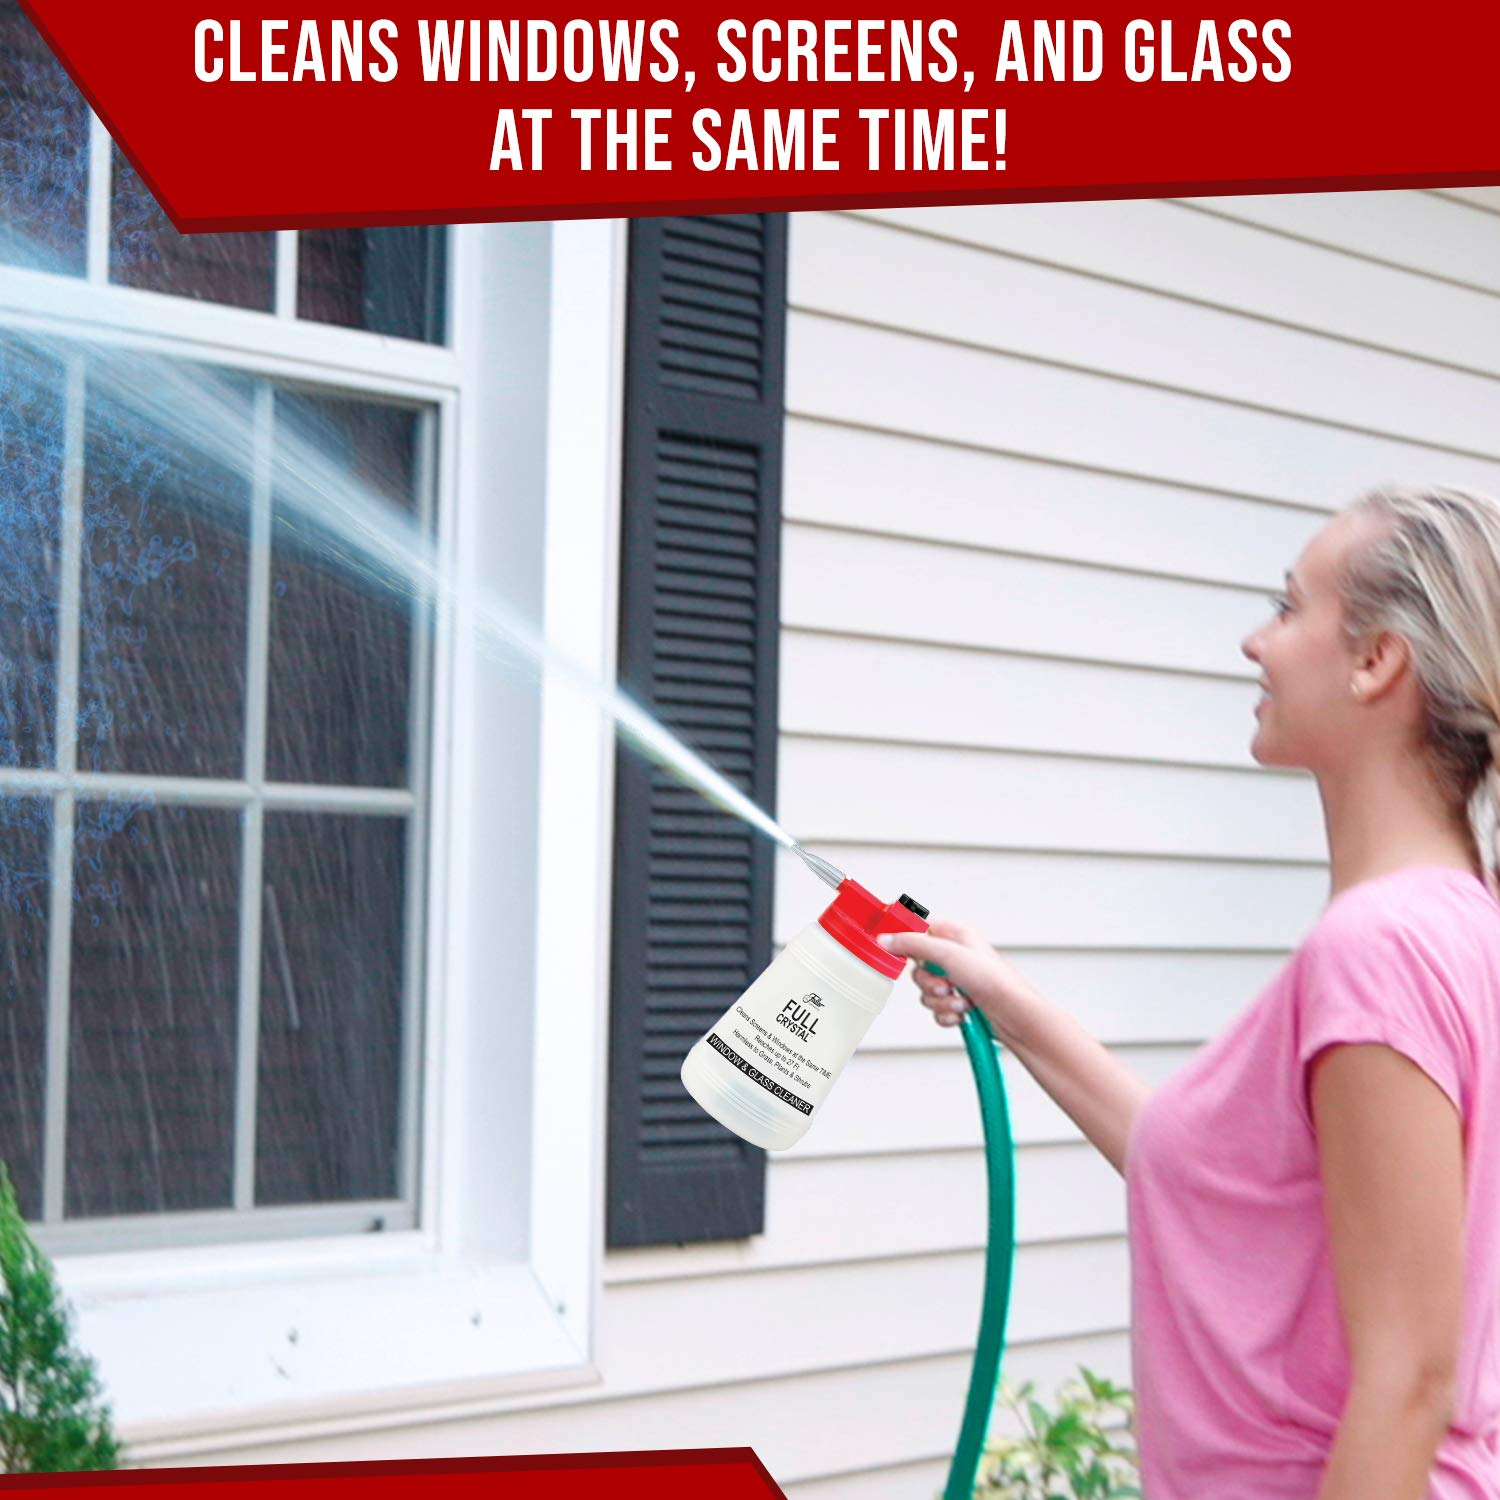 Full Crystal Kit - Bottle, Lid with Hose Attachment, and Two 4 oz. Crystal Powder Exterior Window Cleaner Packets for Glass and Screens (Cleans Up to 40 Windows) by Full Crystal (Image #3)